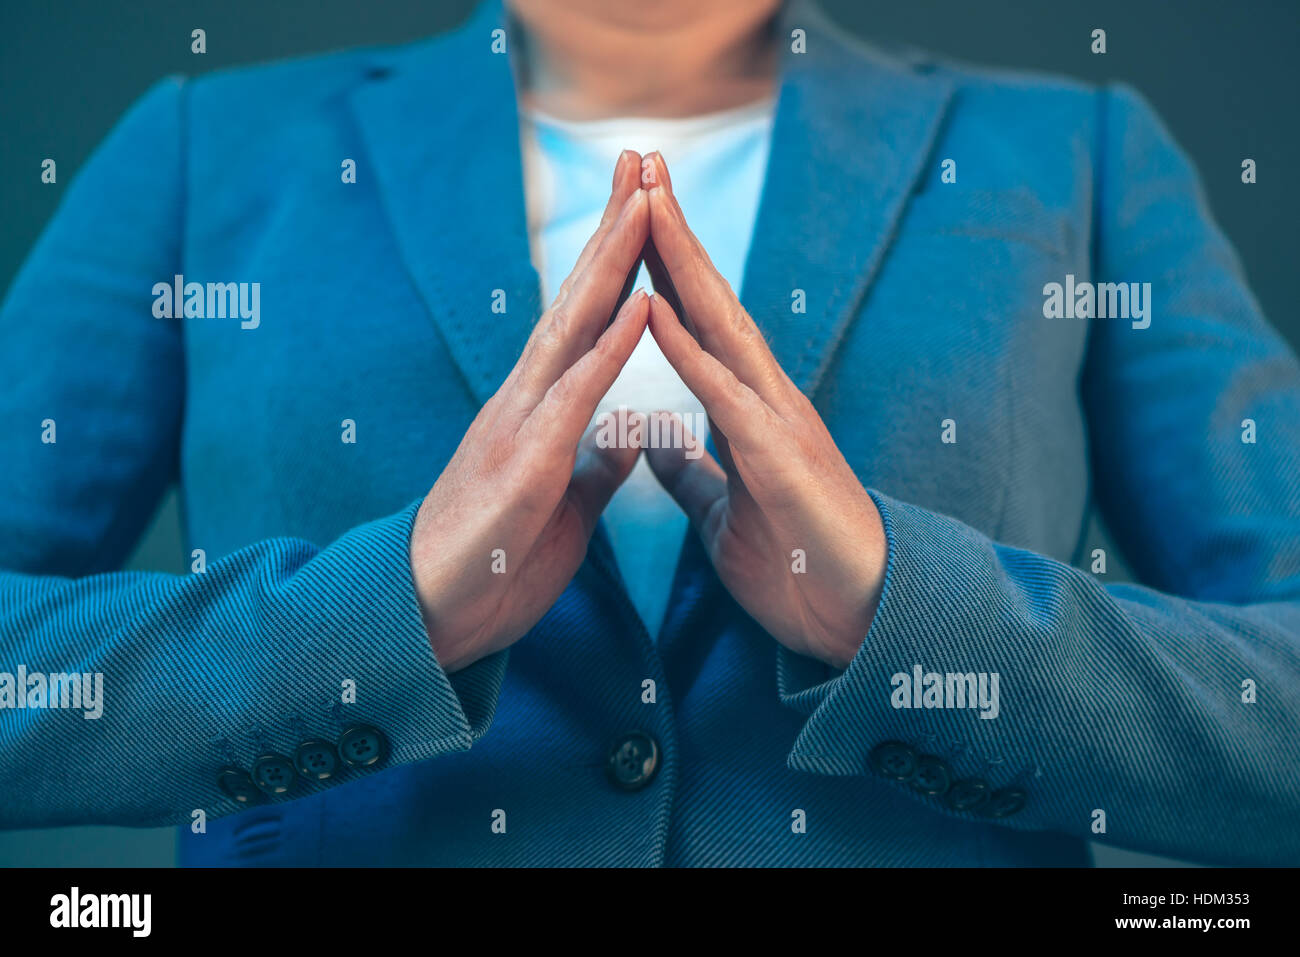 Businesswoman body language for confidence and self-esteem, hands with steepled fingers - Stock Image